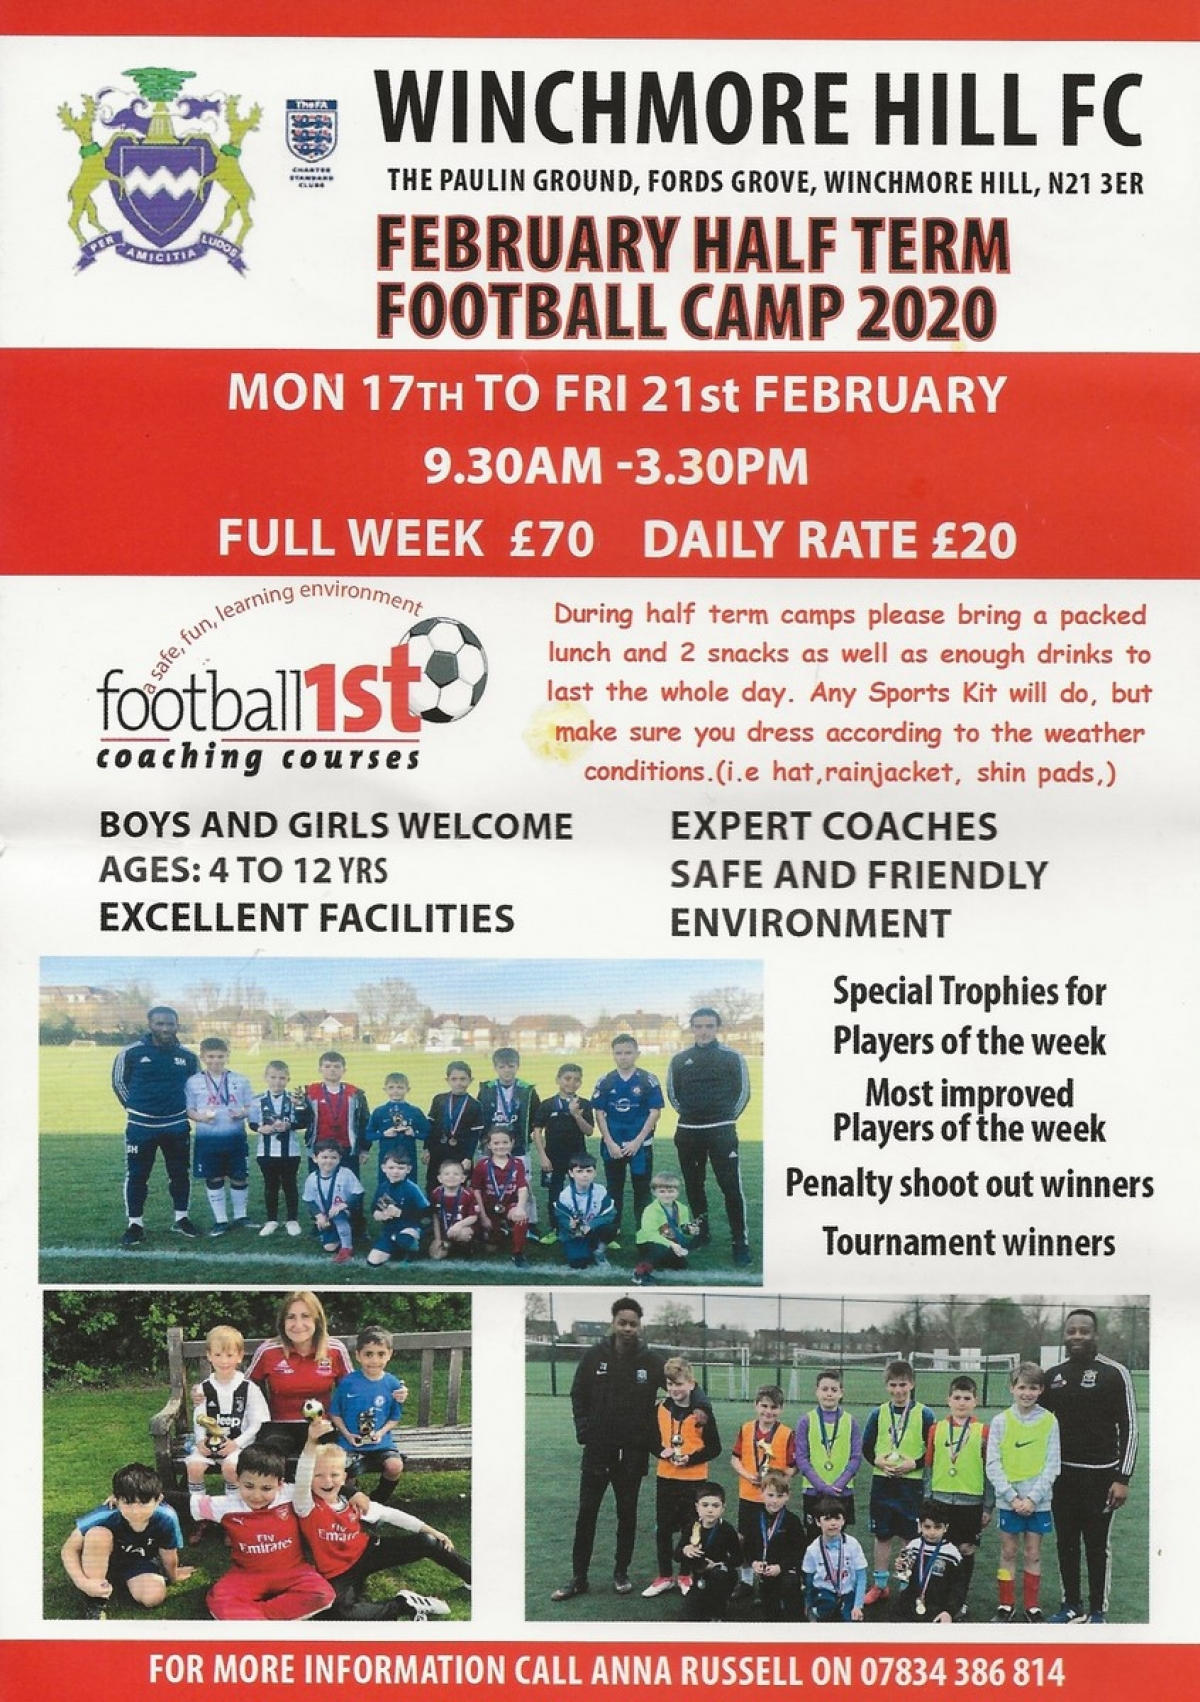 February Half Term Football Camp 2020